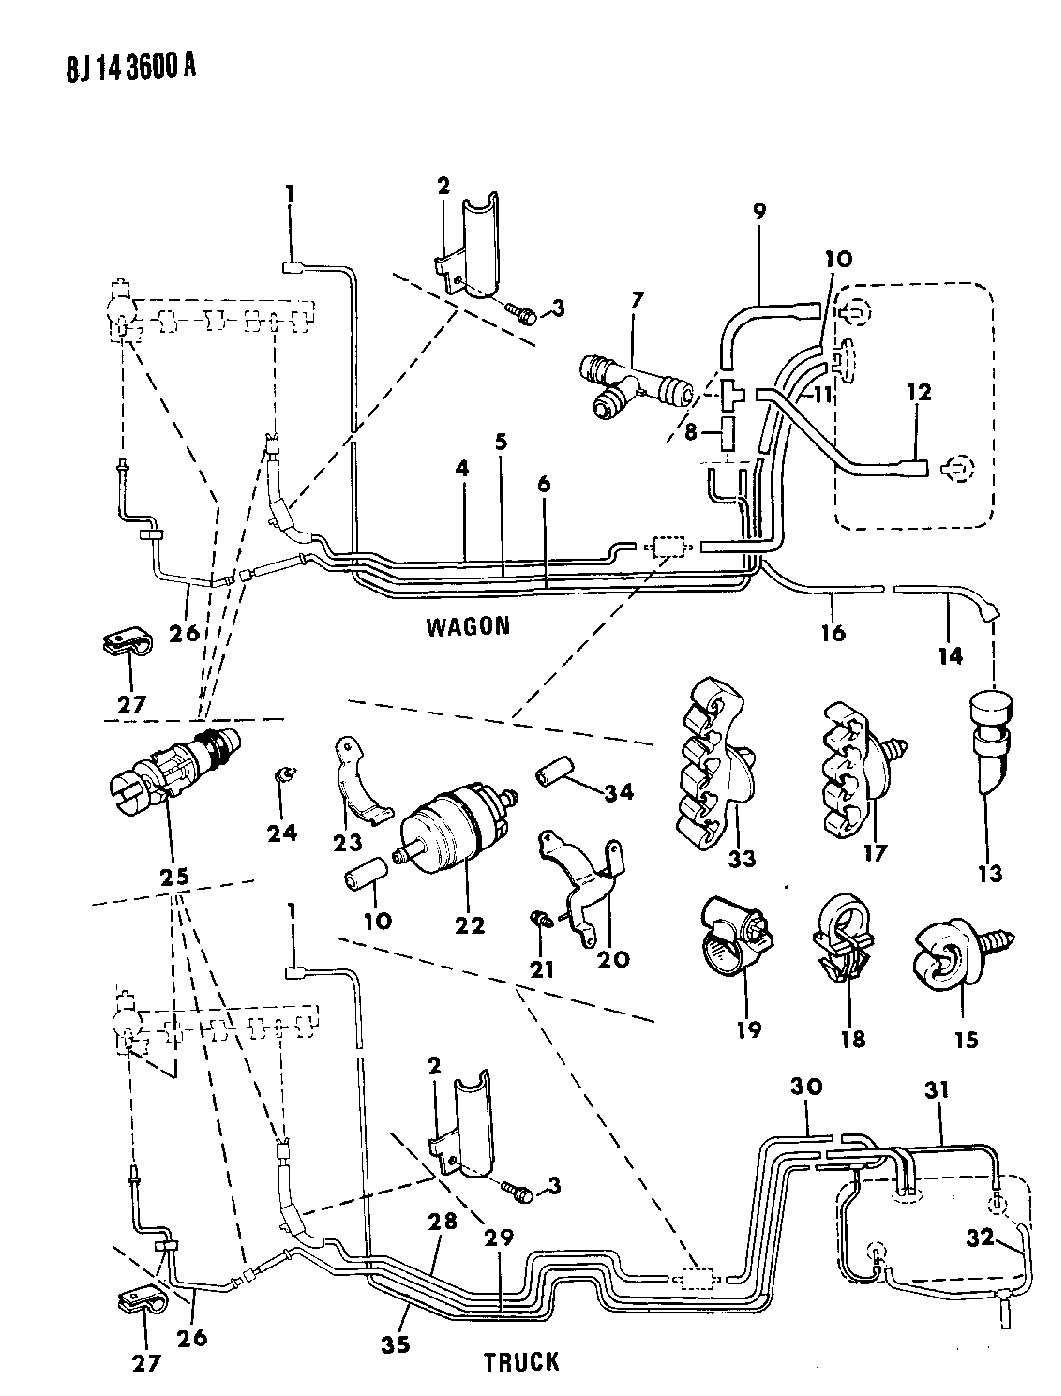 Jeep Comanche Parts Diagram Wire Data Schema Opamp Pulsewidth Modulator Circuit Tradeoficcom 1988 4 0 Engine 97 Grand Interior Concept